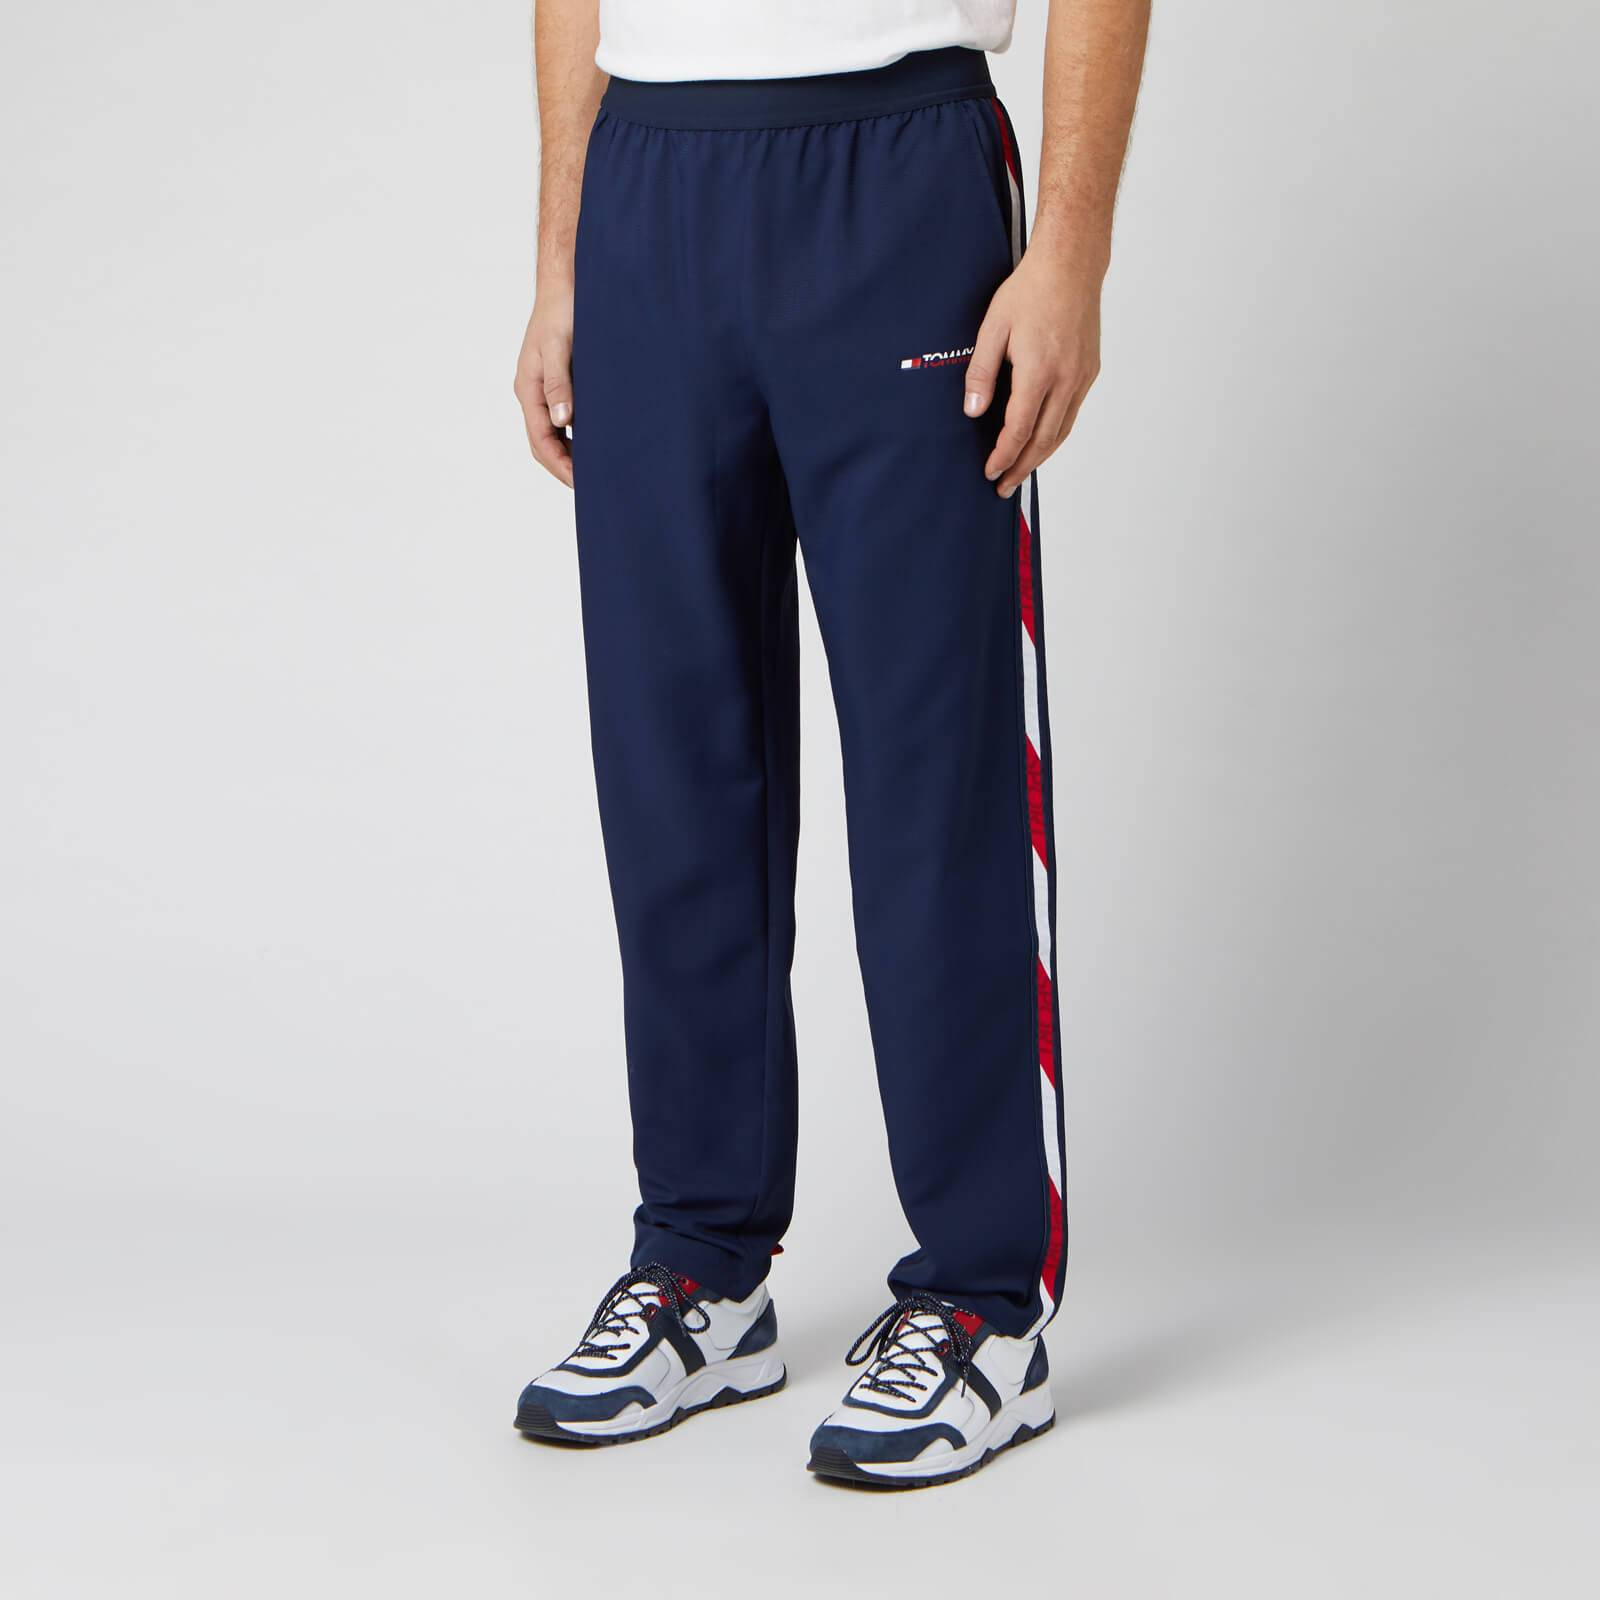 Tommy Hilfiger Sport Men's Woven Tape Pants - Sport Navy - XL